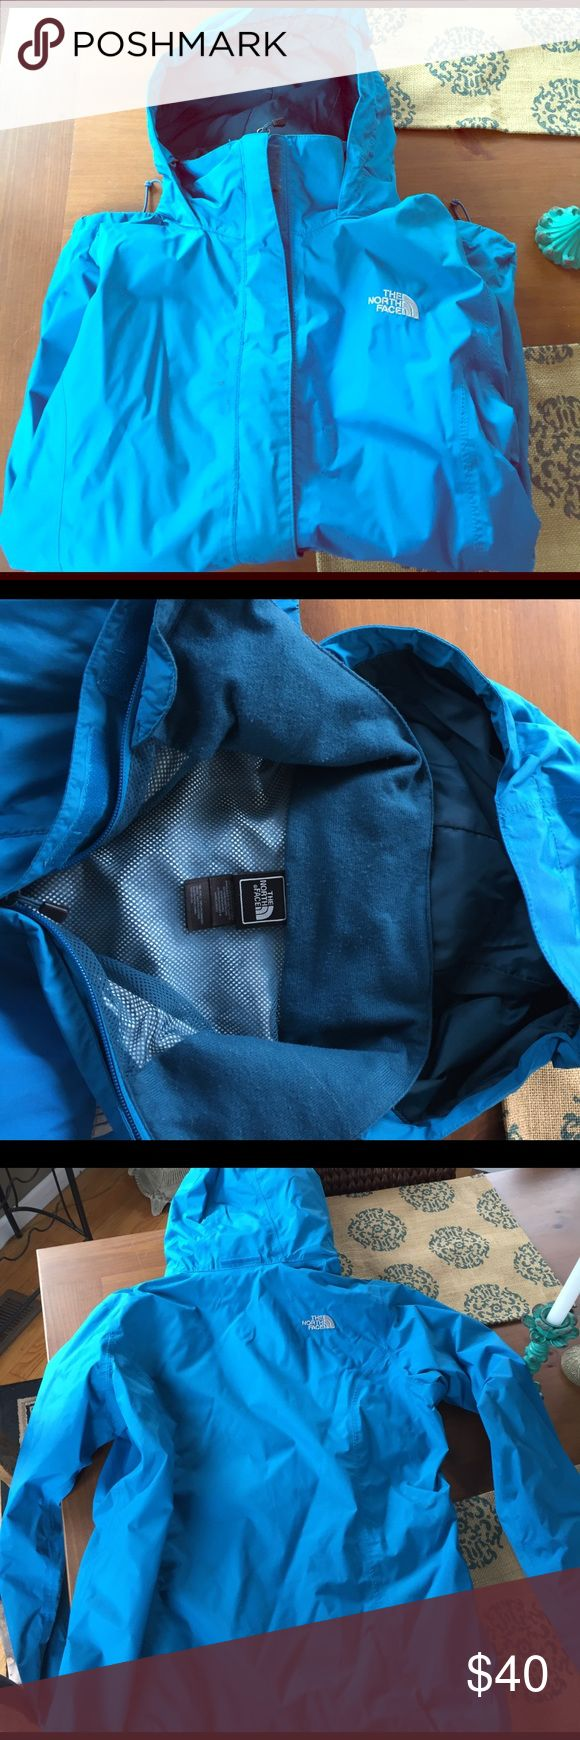 Bright blue North Face rain jacket ☔️ In good used condition fully lined rain coat. One small stain near zipper but no rips or tears. Fleeced lined collar and two front pocket zippers. Elastic on sides to adjust fit. Women's large North Face Jackets & Coats Trench Coats